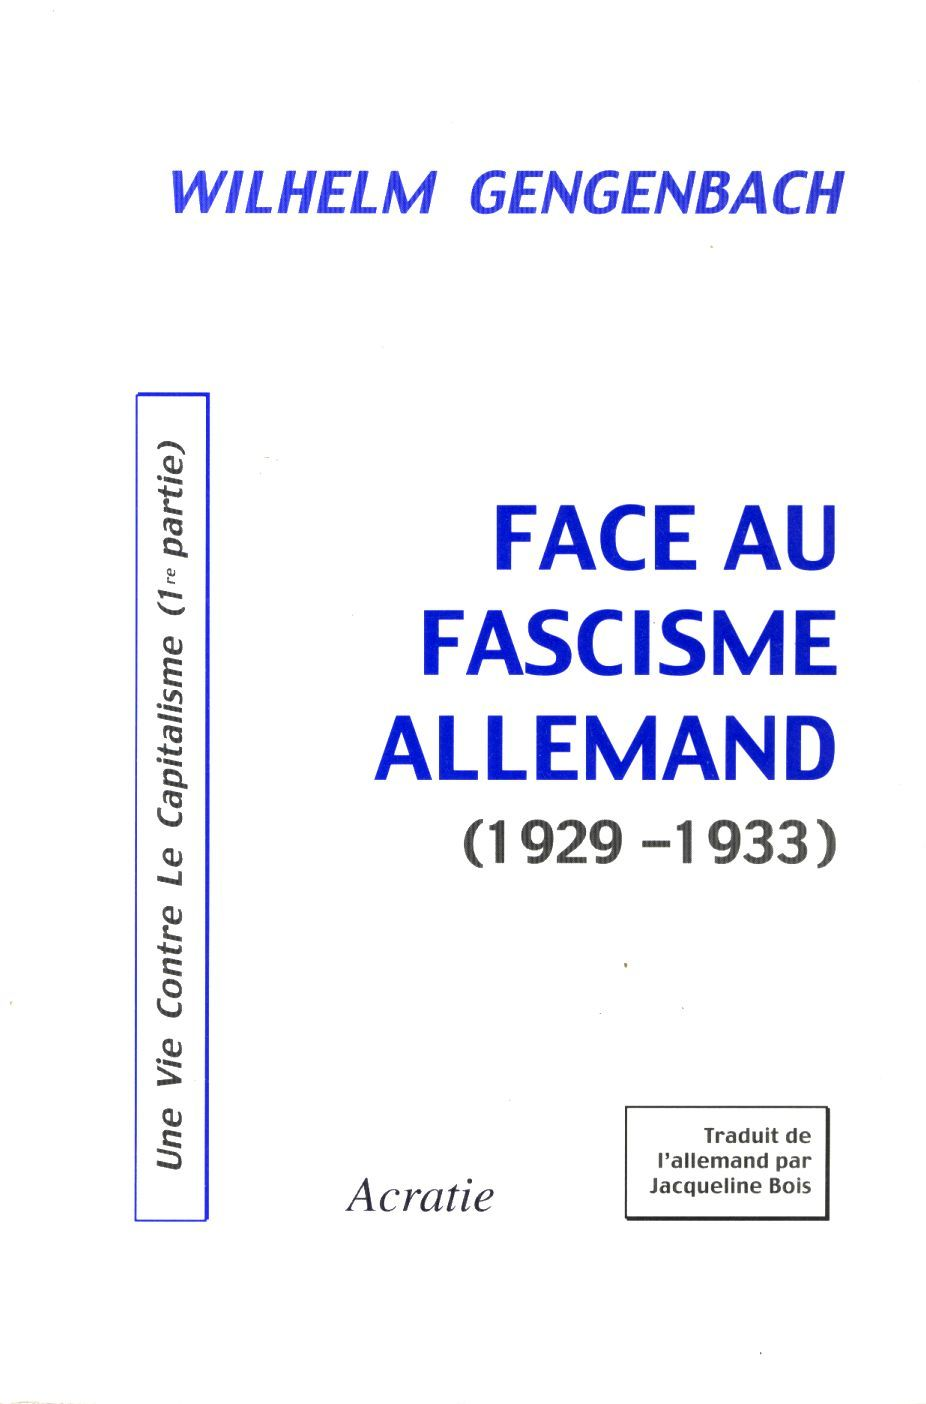 FACE AU FASCISME ALLEMAND (1929-1933)